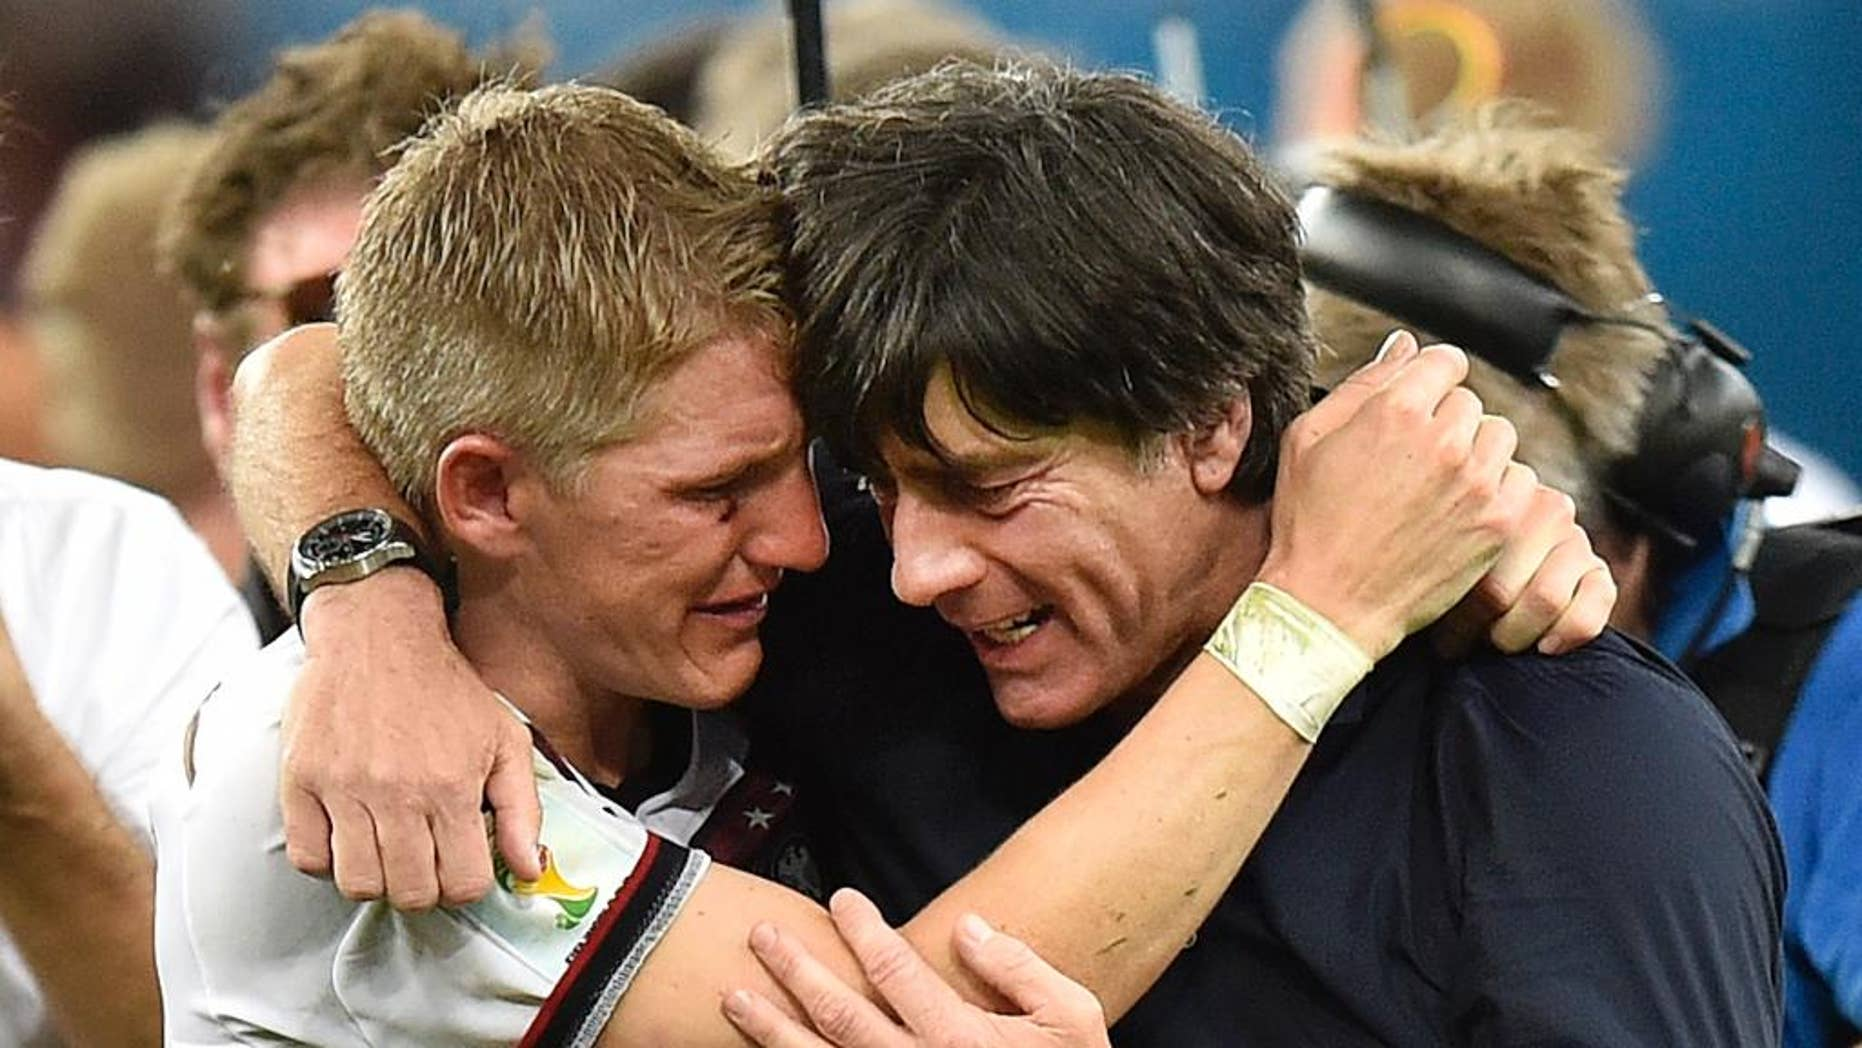 Germany's Bastian Schweinsteiger and Germany's head coach Joachim Loew embrace after the World Cup final soccer match between Germany and Argentina at the Maracana Stadium in Rio de Janeiro, Brazil, Sunday, July 13, 2014. Germany won the match 1-0 (AP Photo/Martin Meissner)